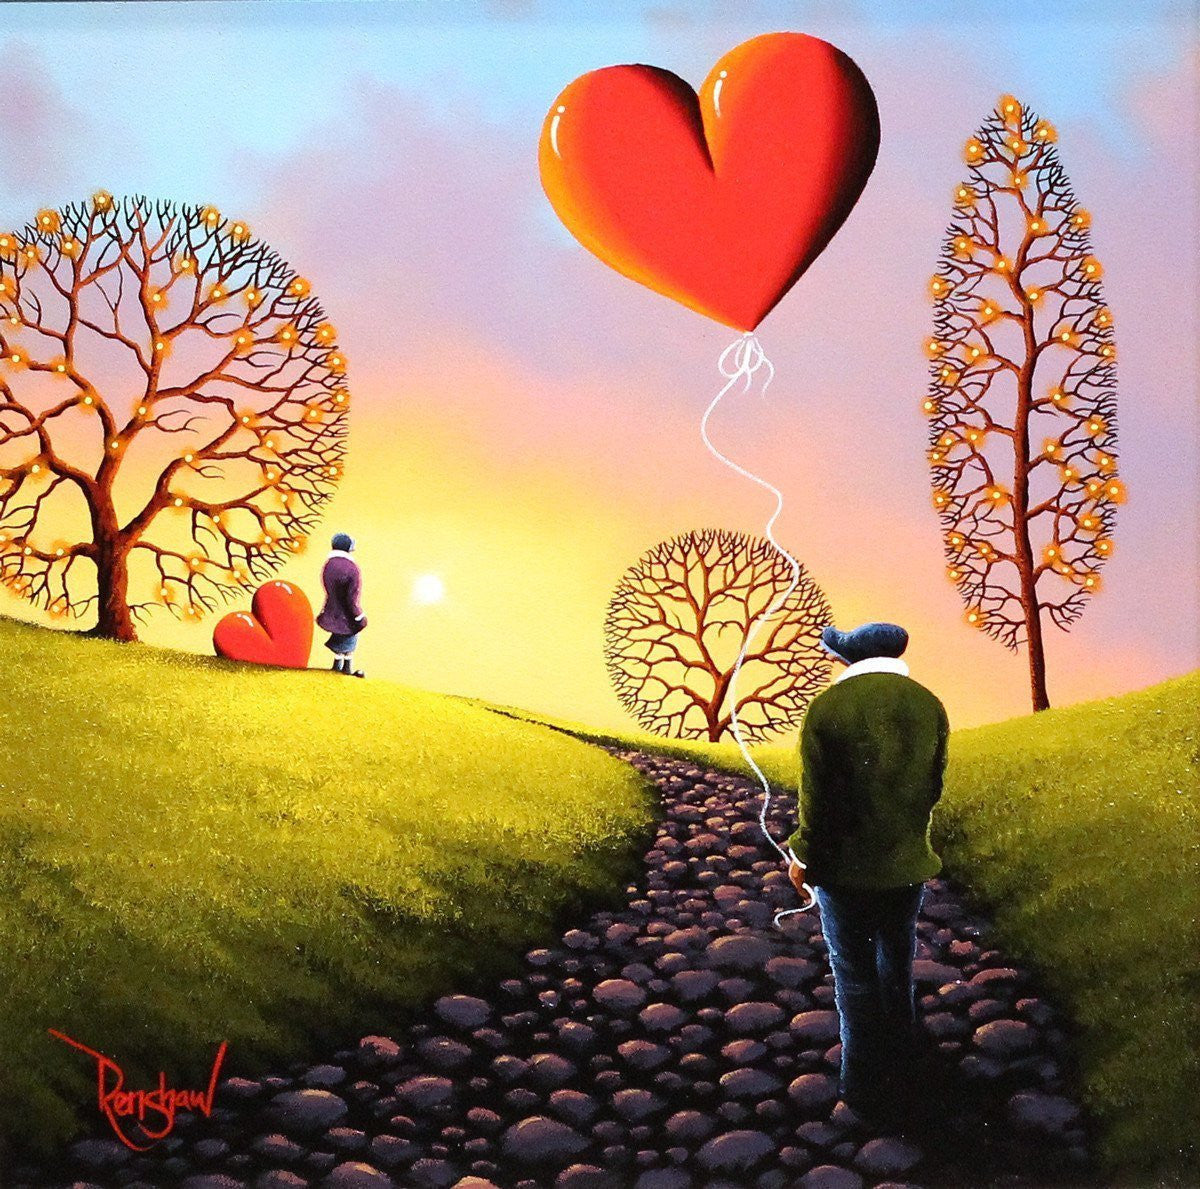 Love on the Horizon - SOLD David Renshaw